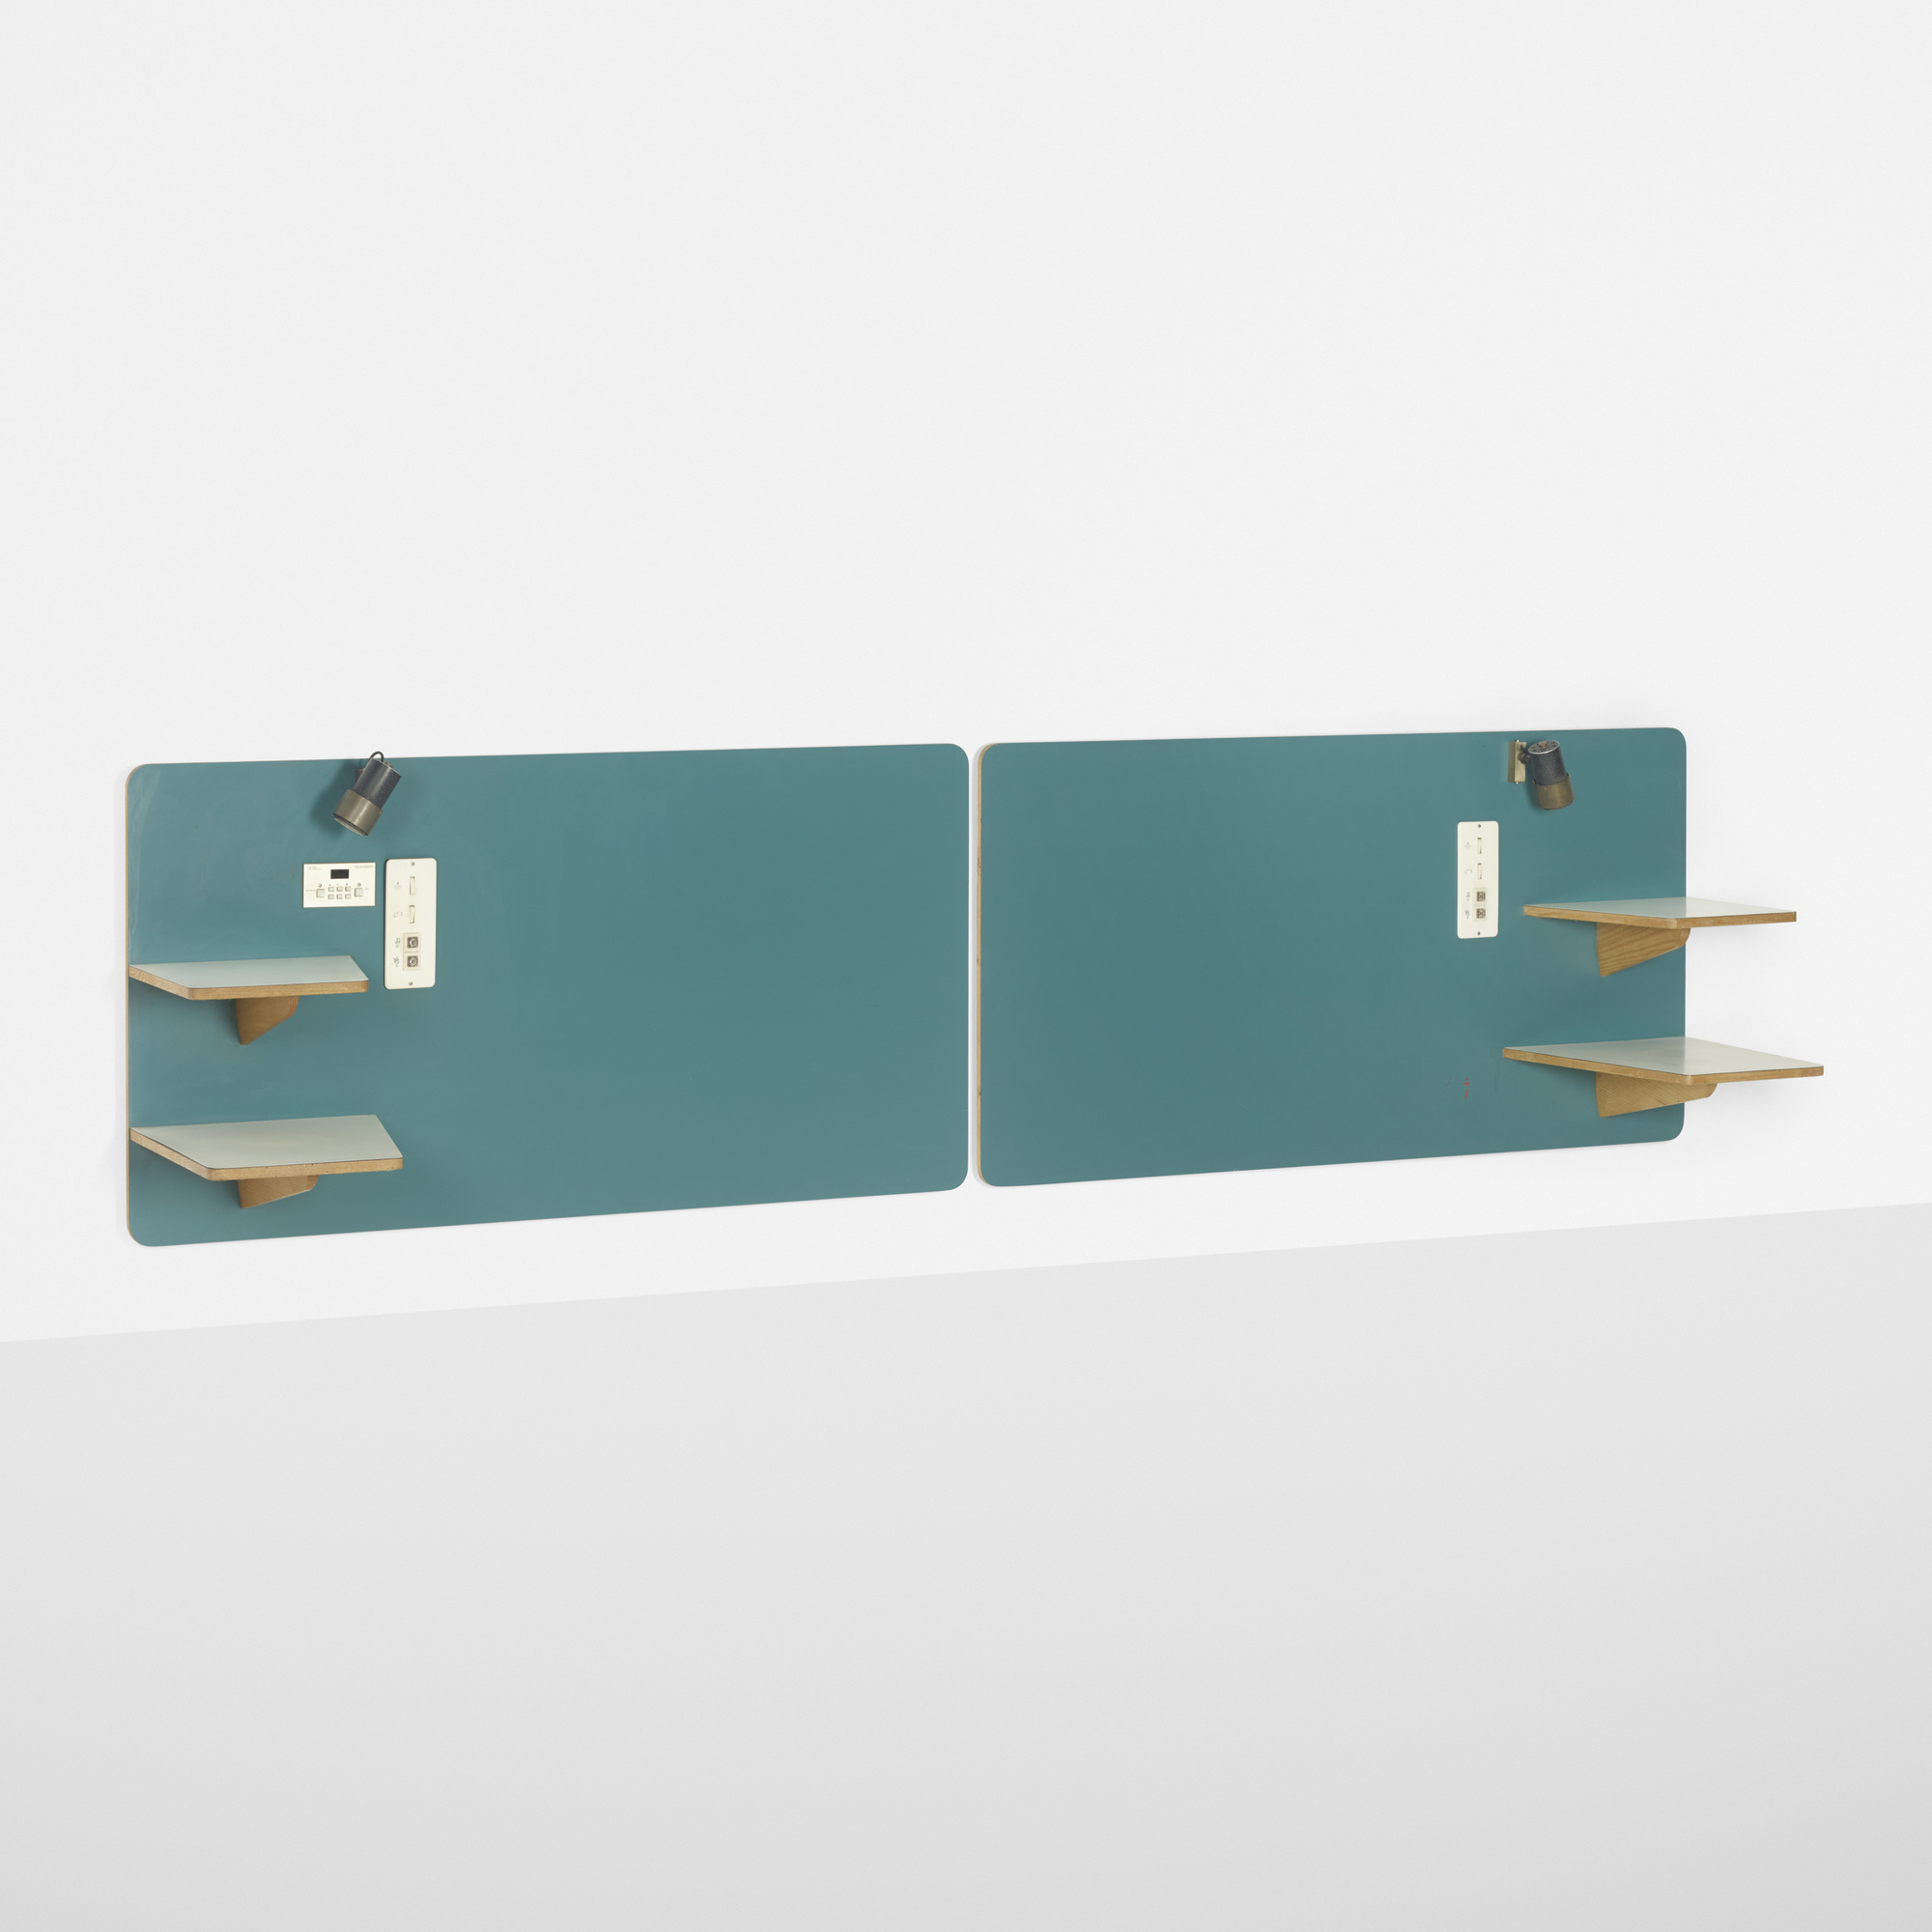 262: Gio Ponti / pair of headboards from the Hotel Parco dei Principi, Rome (1 of 2)